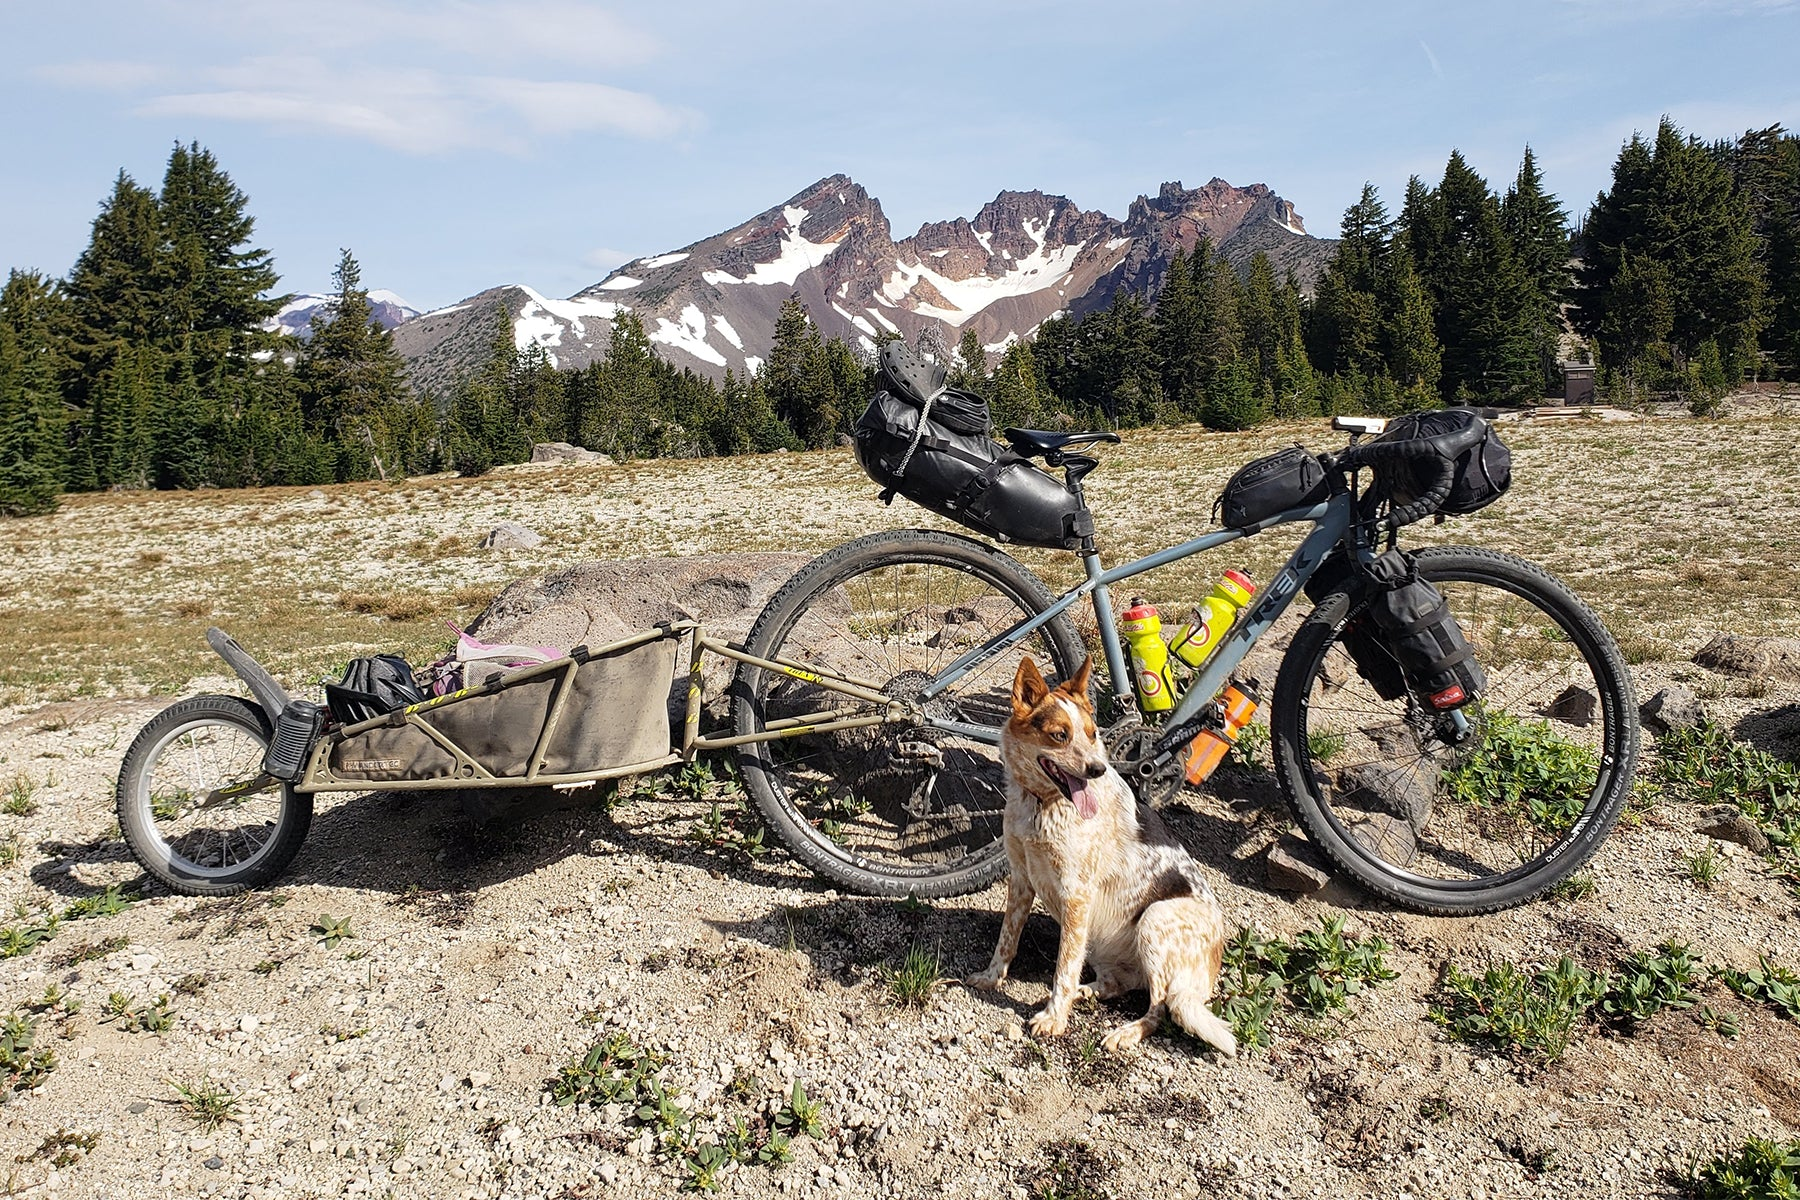 Emma next to the loaded up gravel bike setup with broken Top mountain in the background.